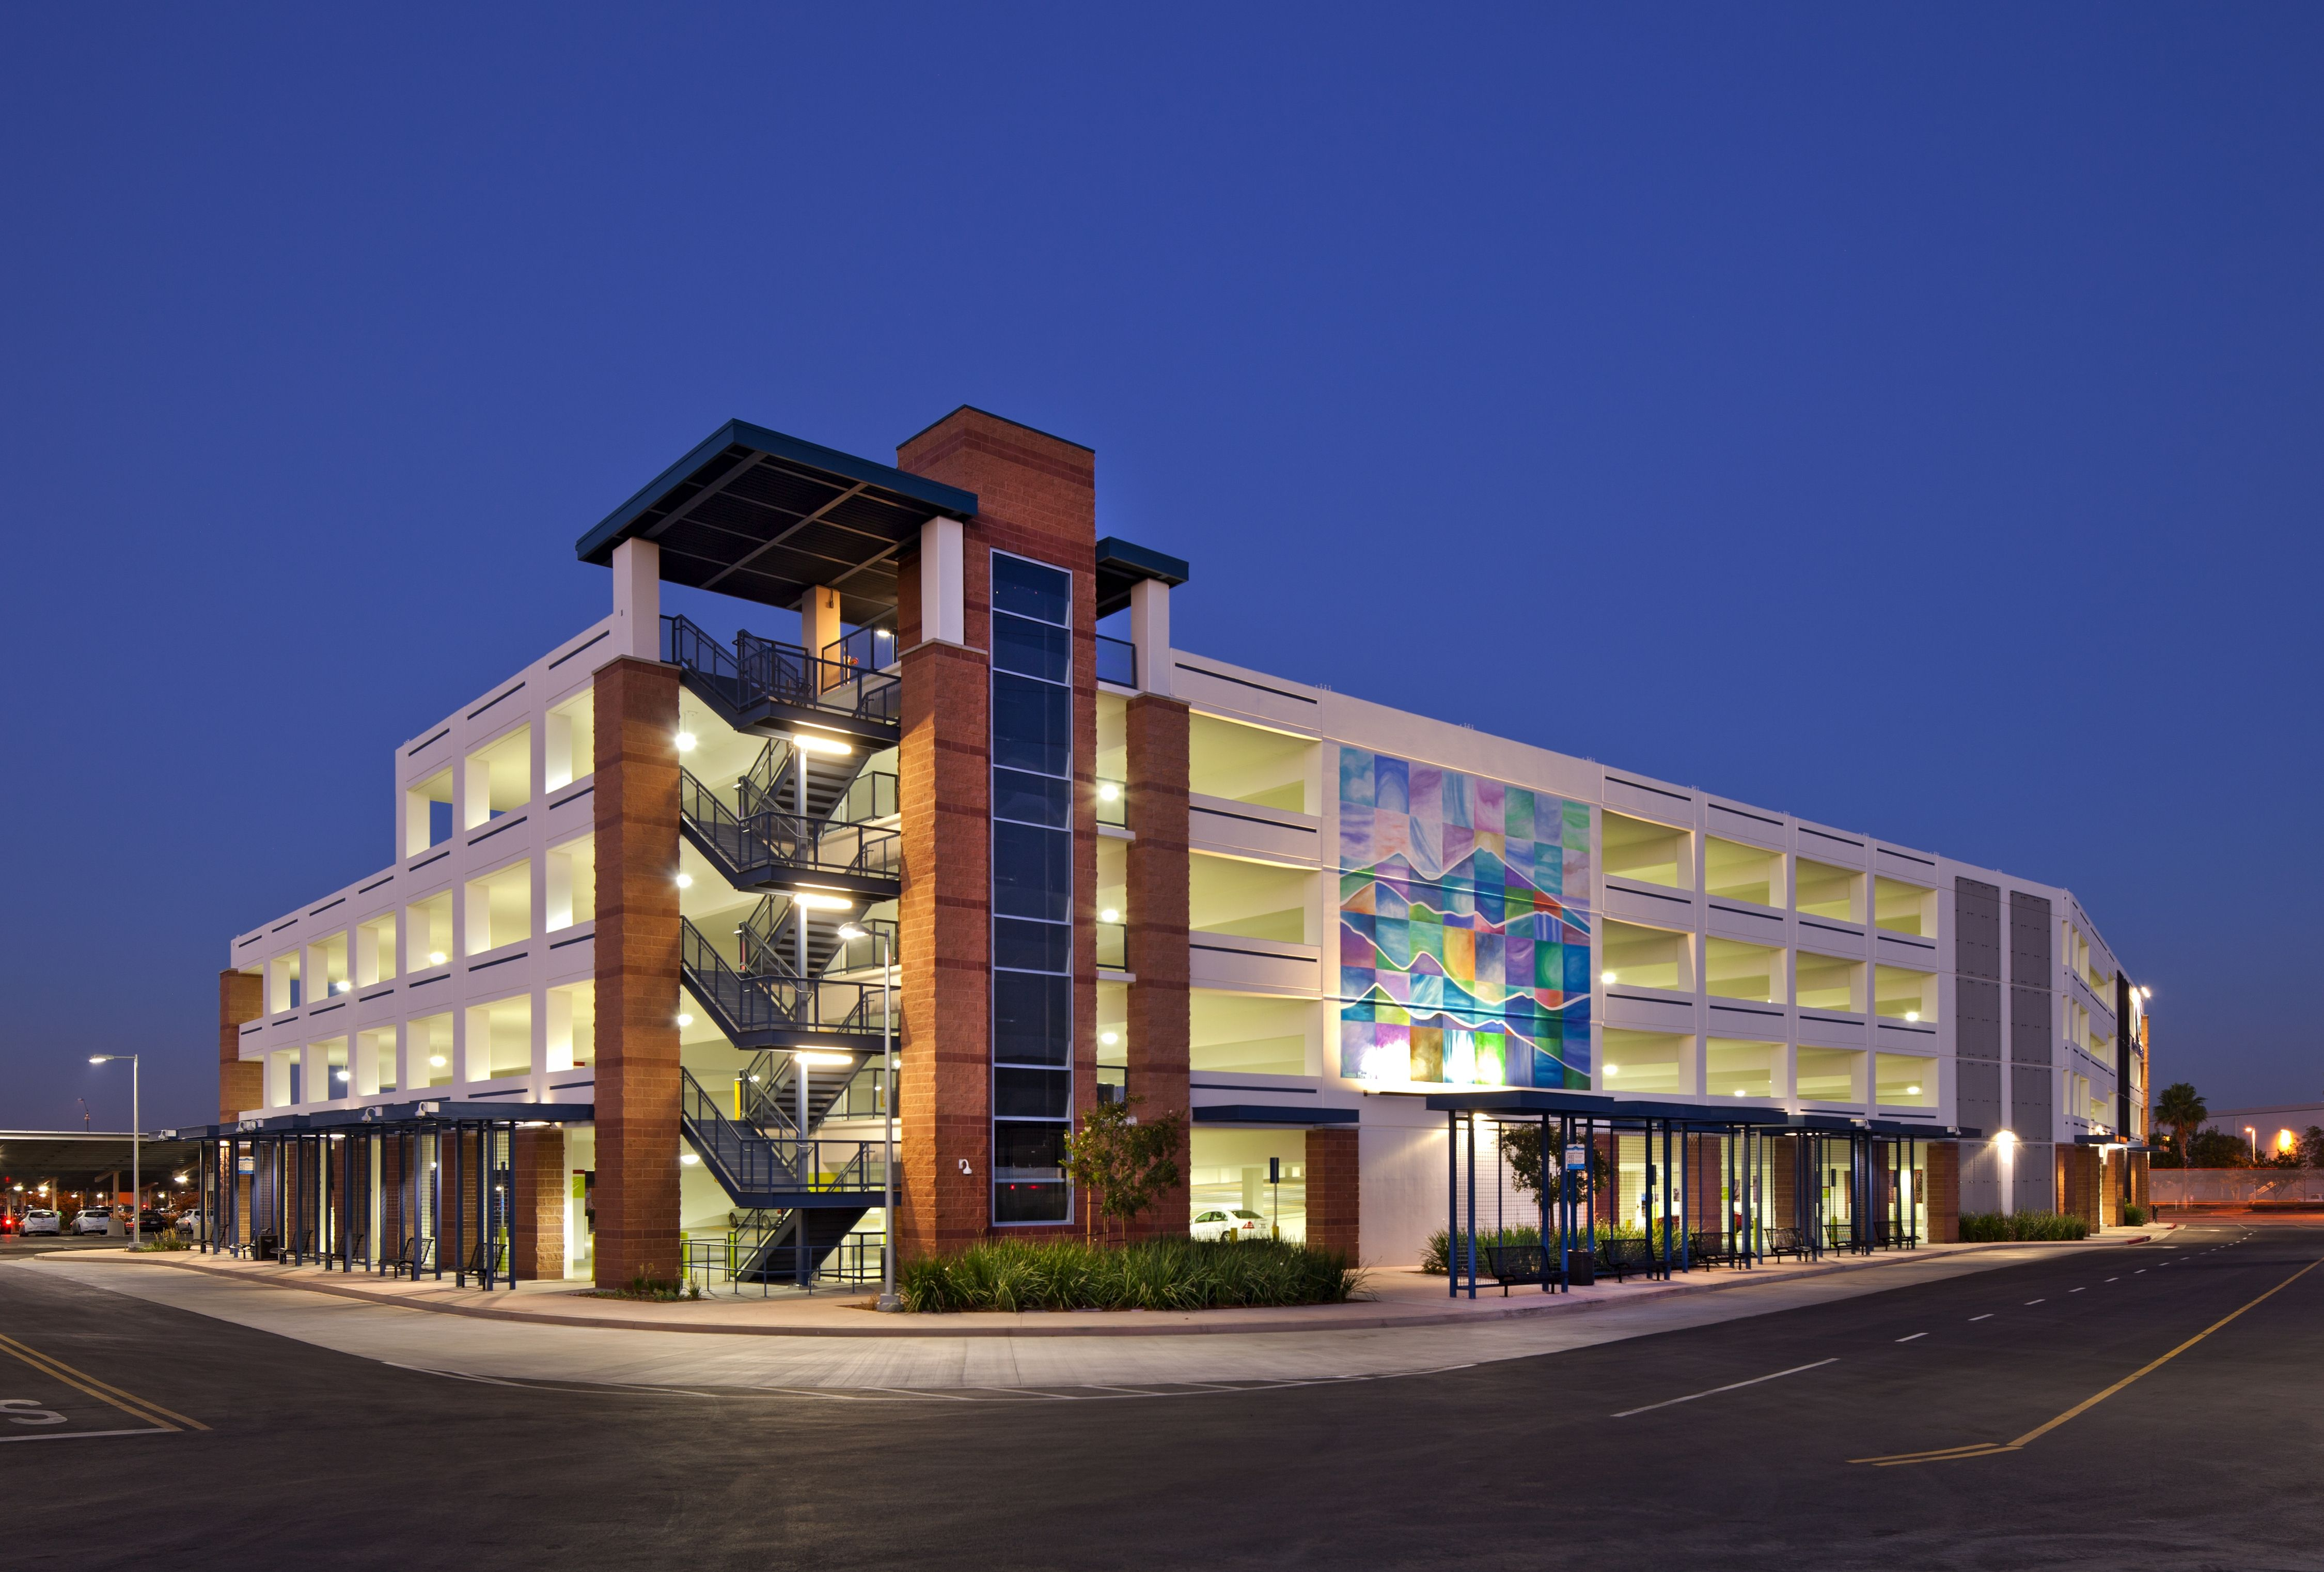 Parking Structures With Retail On The First Floor Google Search Otopark